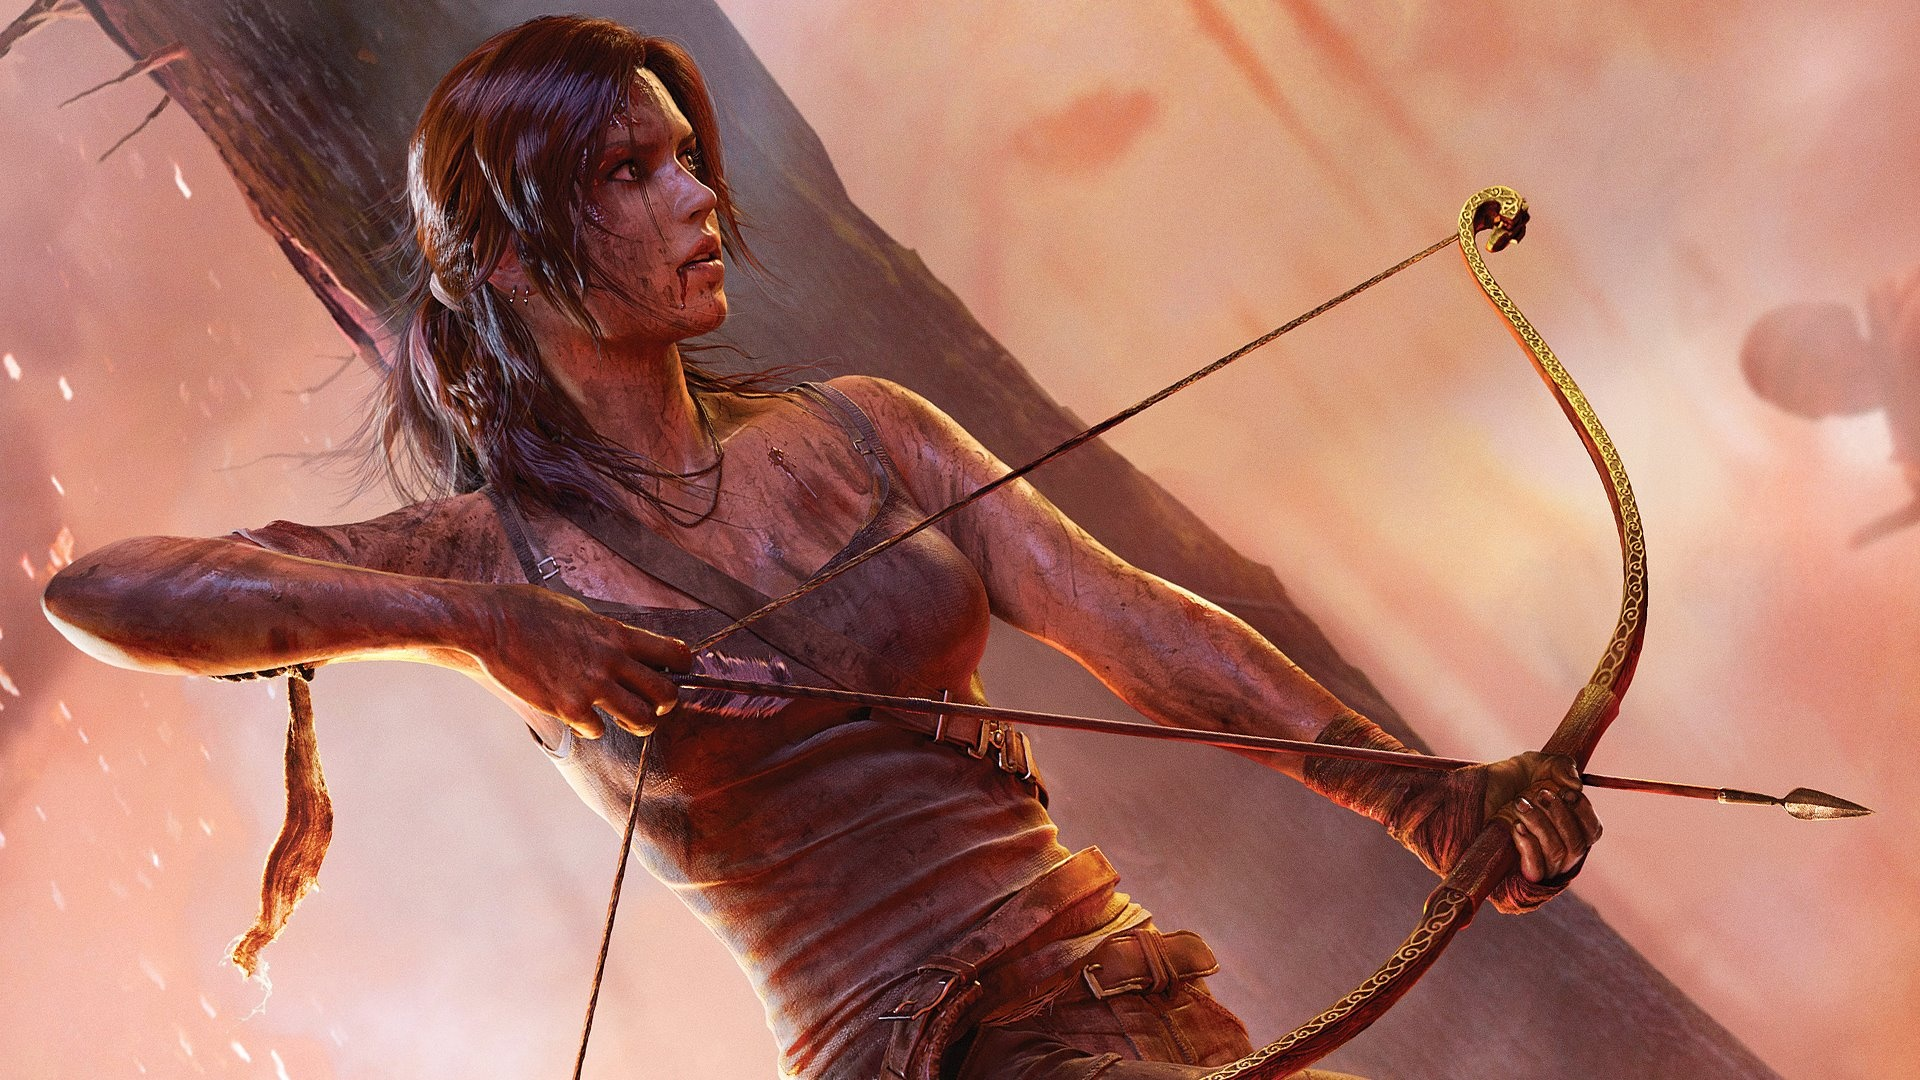 Tomb Raider 2013 Wallpaper: Wallpaper Tomb Raider 2013 HD 1920x1080 Full HD 2K Picture